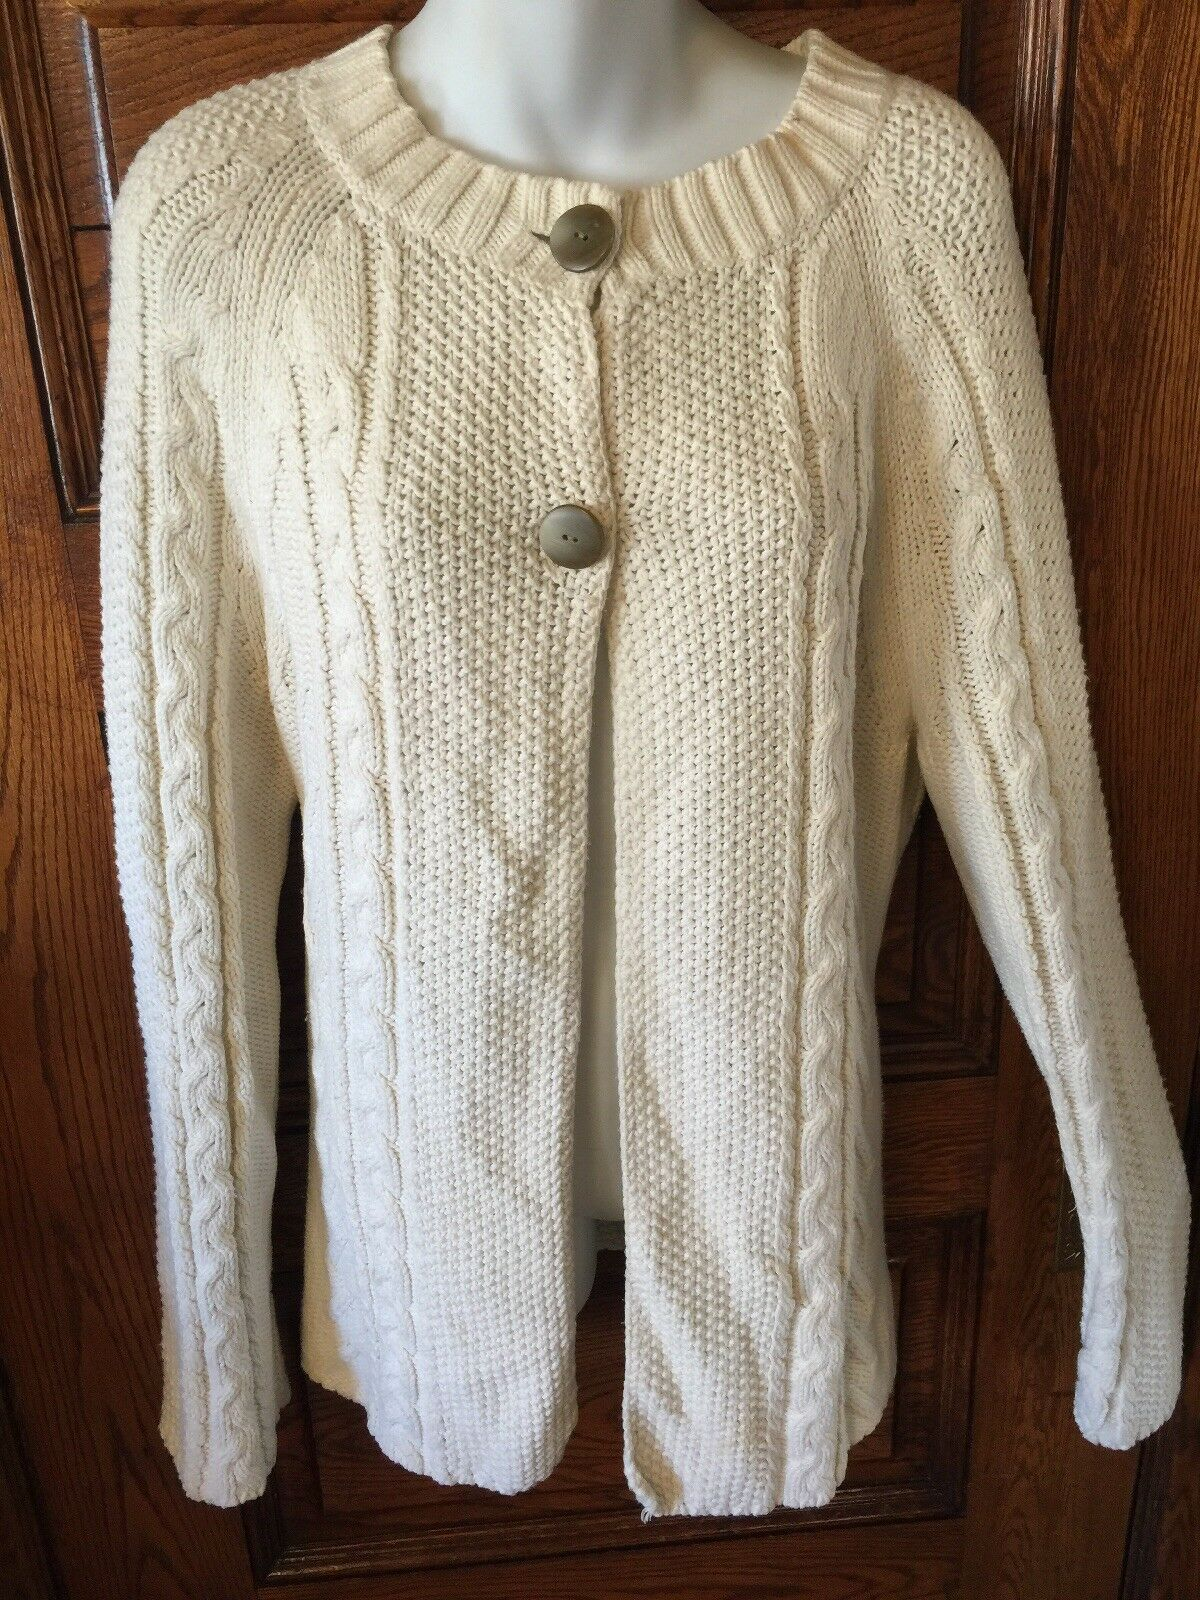 JONES NEW YORK Off-White Cream Classic Cable Knit CARDIGAN SWEATER Size XL EUC